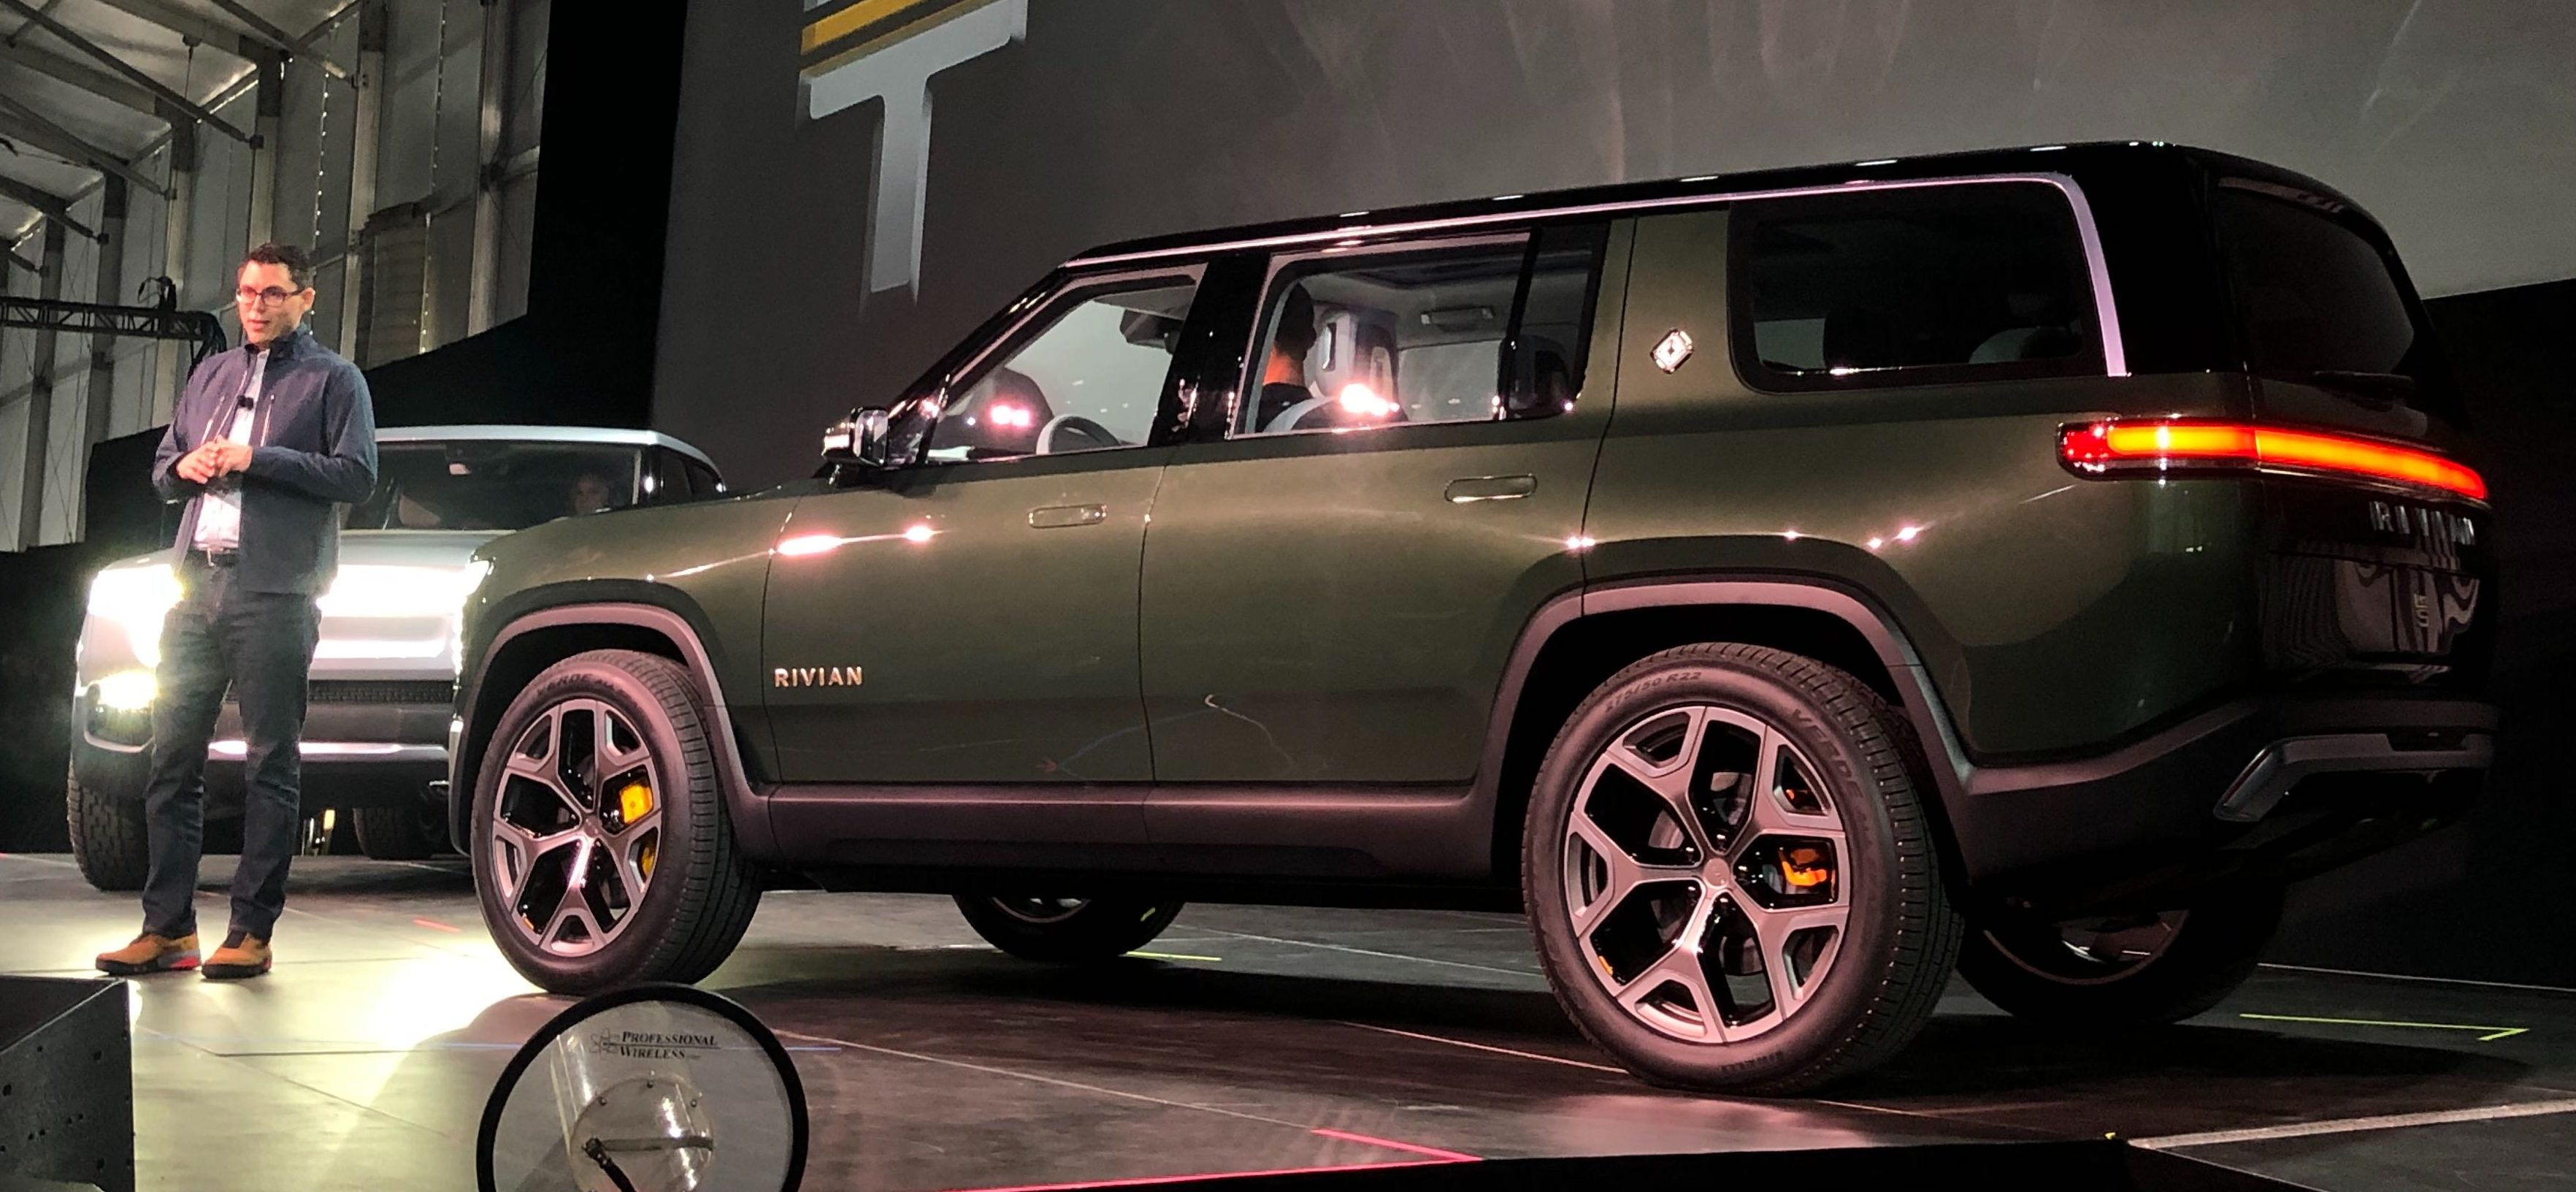 tesla gets nod from rivian ceo for combating untruths about rh teslarati com